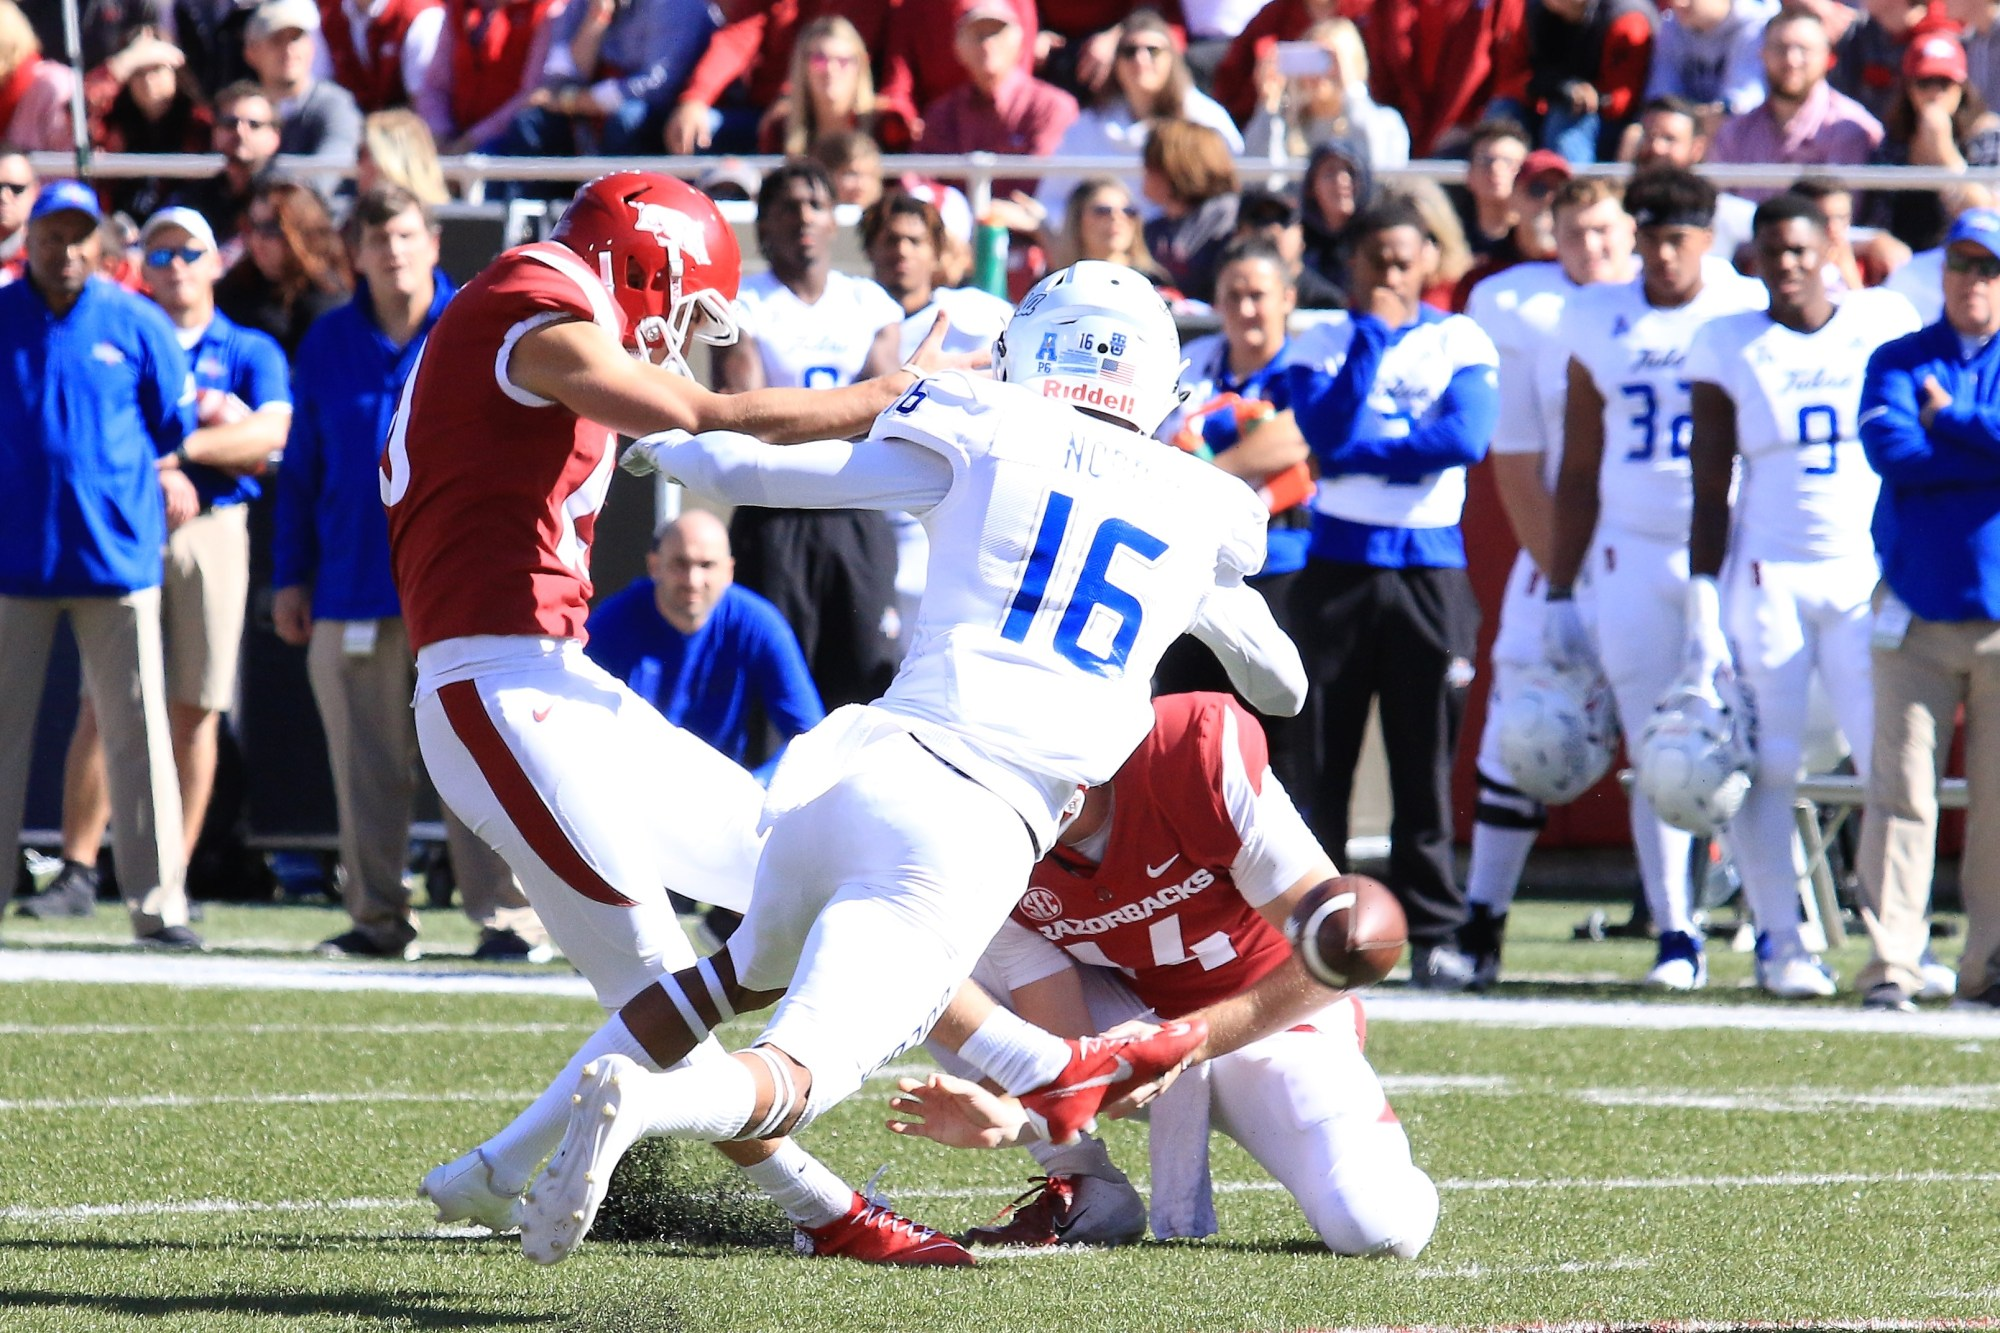 Connor Limpert FG vs Tulsa_1540502463341.JPG.jpg